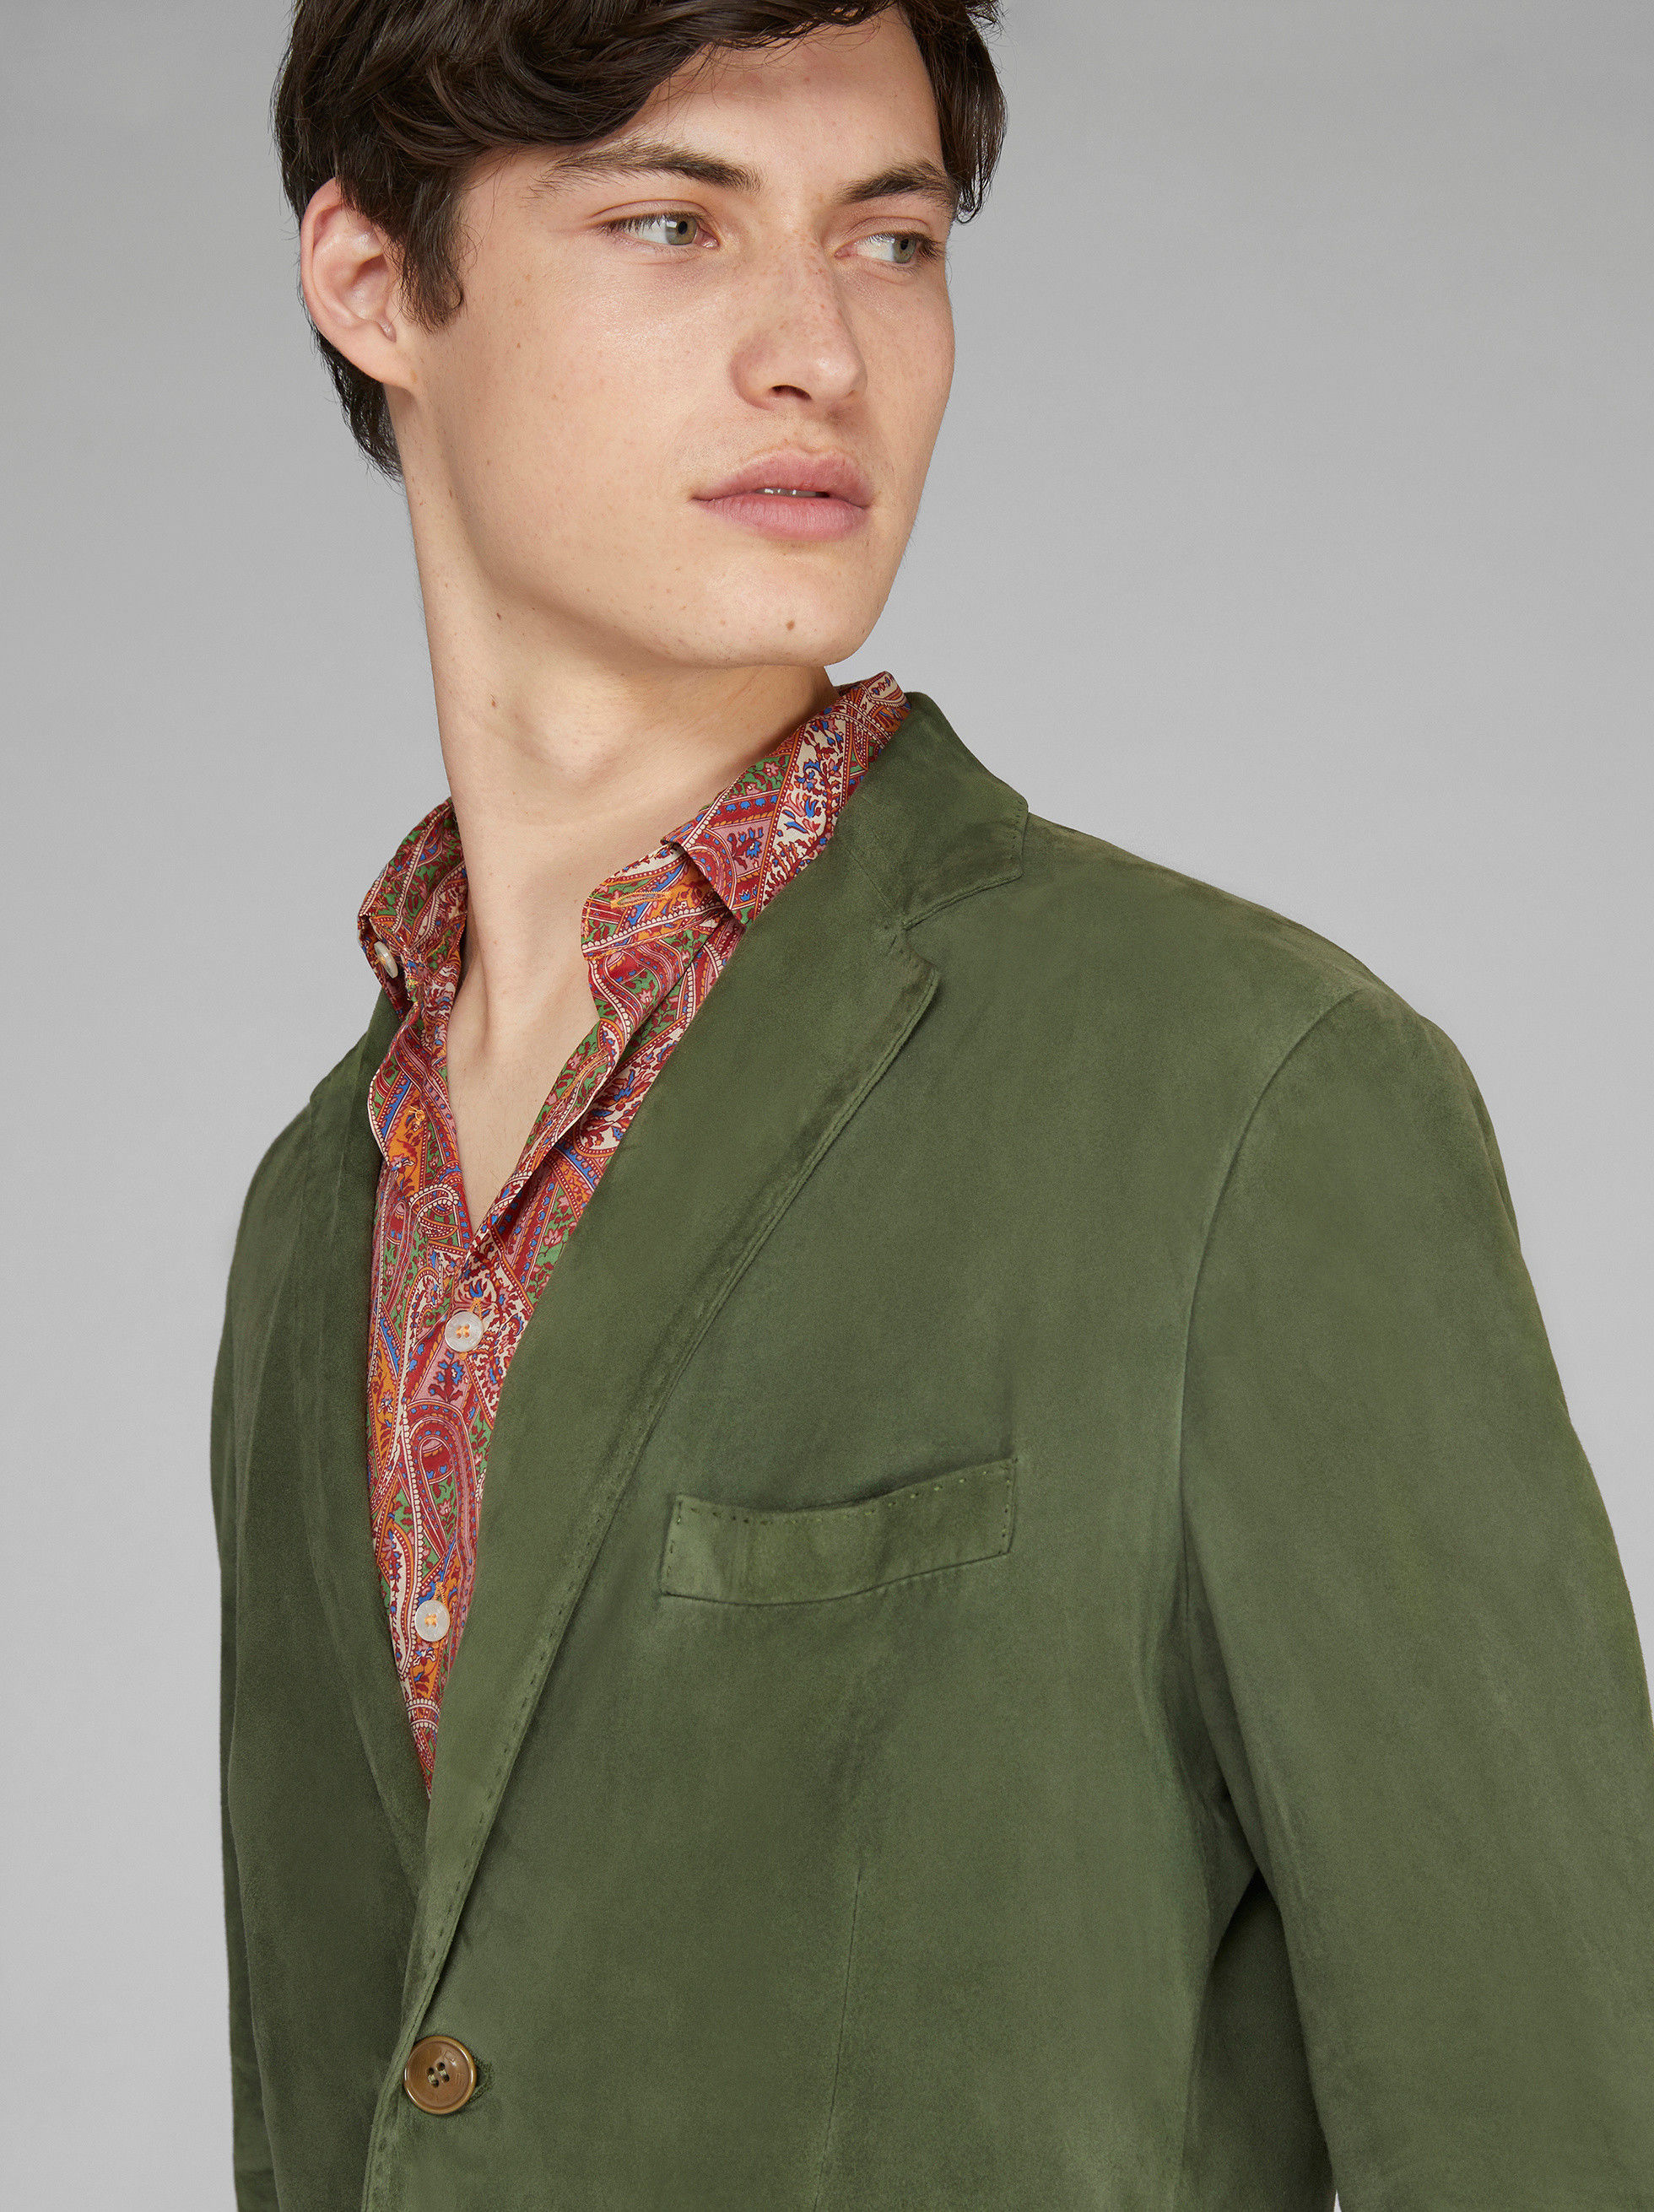 TAILORED SUEDE JACKET